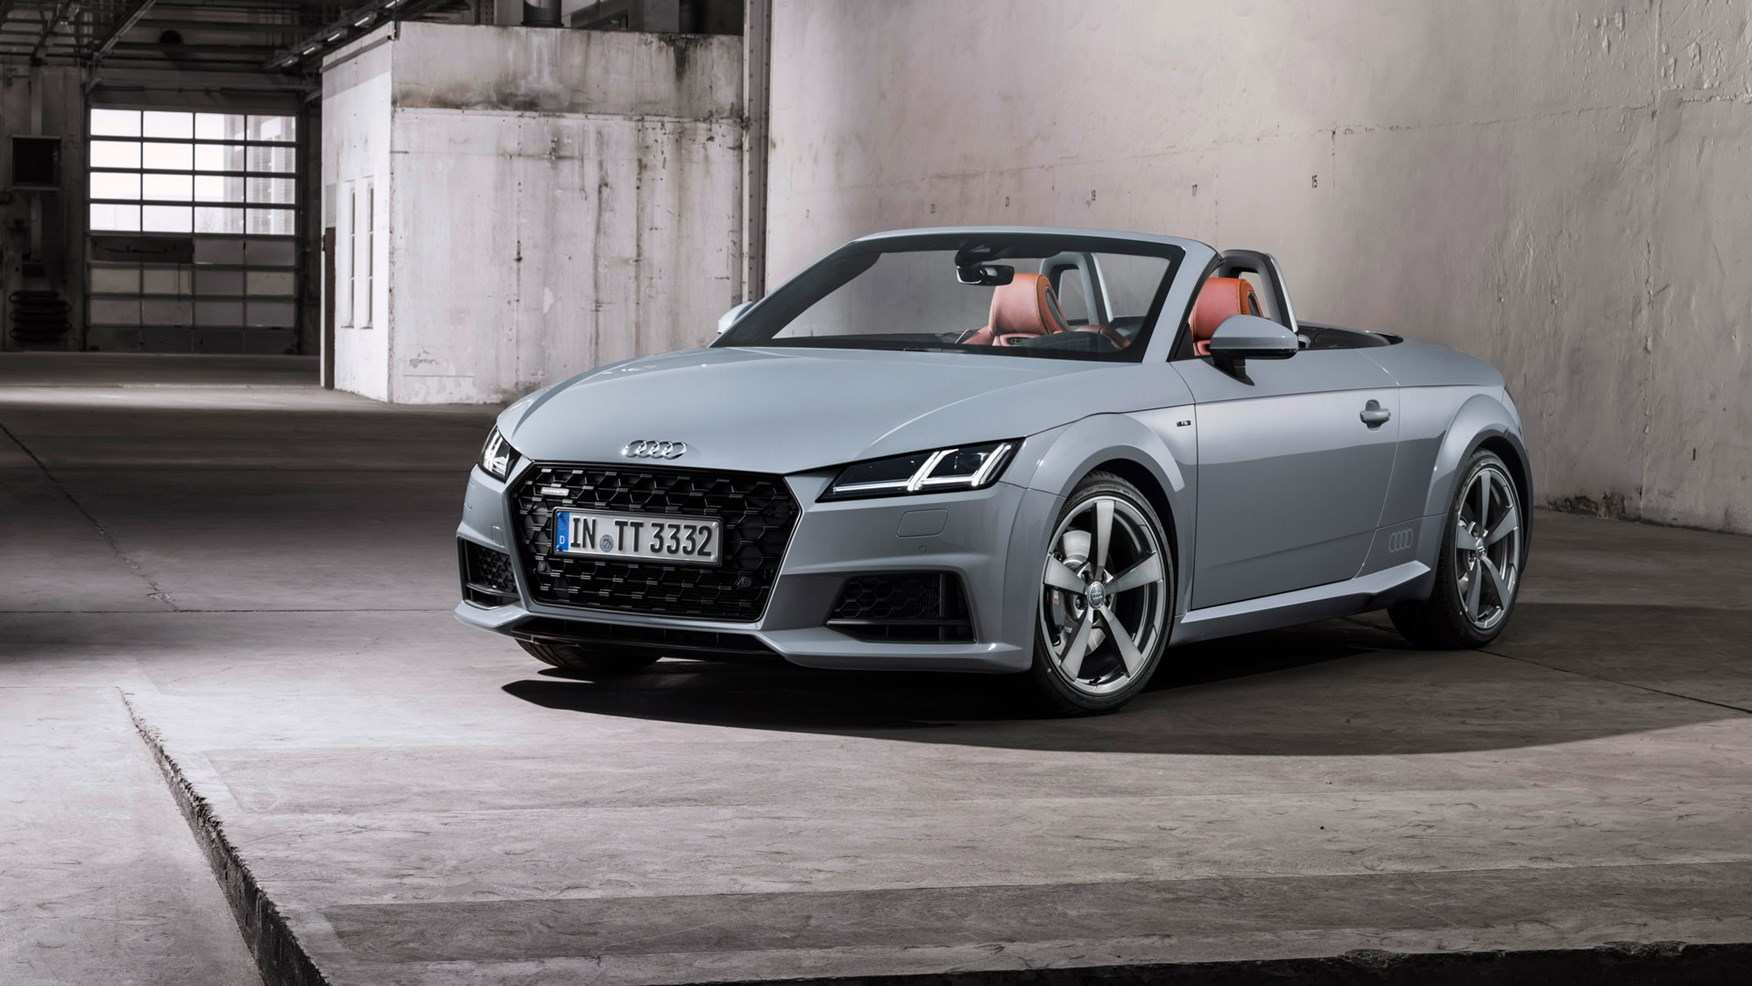 66 Gallery of 2019 Audi Tt Concept with 2019 Audi Tt